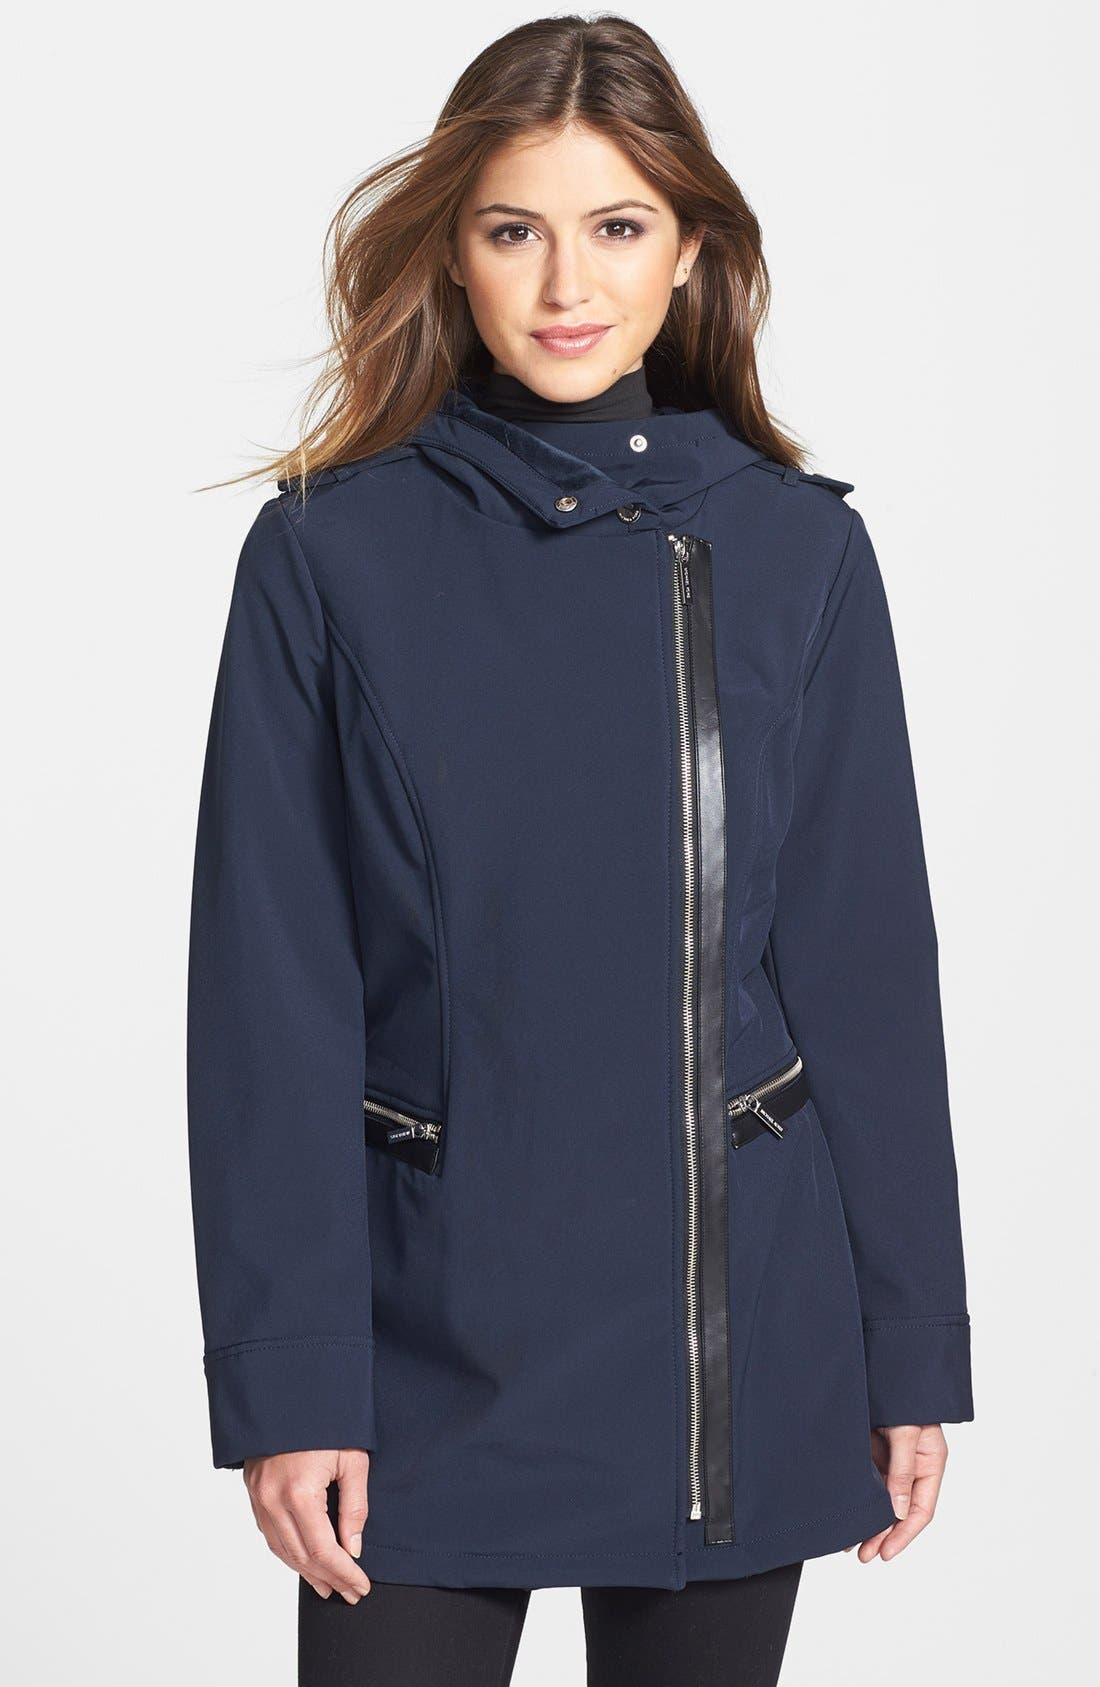 Alternate Image 1 Selected - MICHAEL Michael Kors Faux Leather Trim Soft Shell Jacket (Regular & Petite)